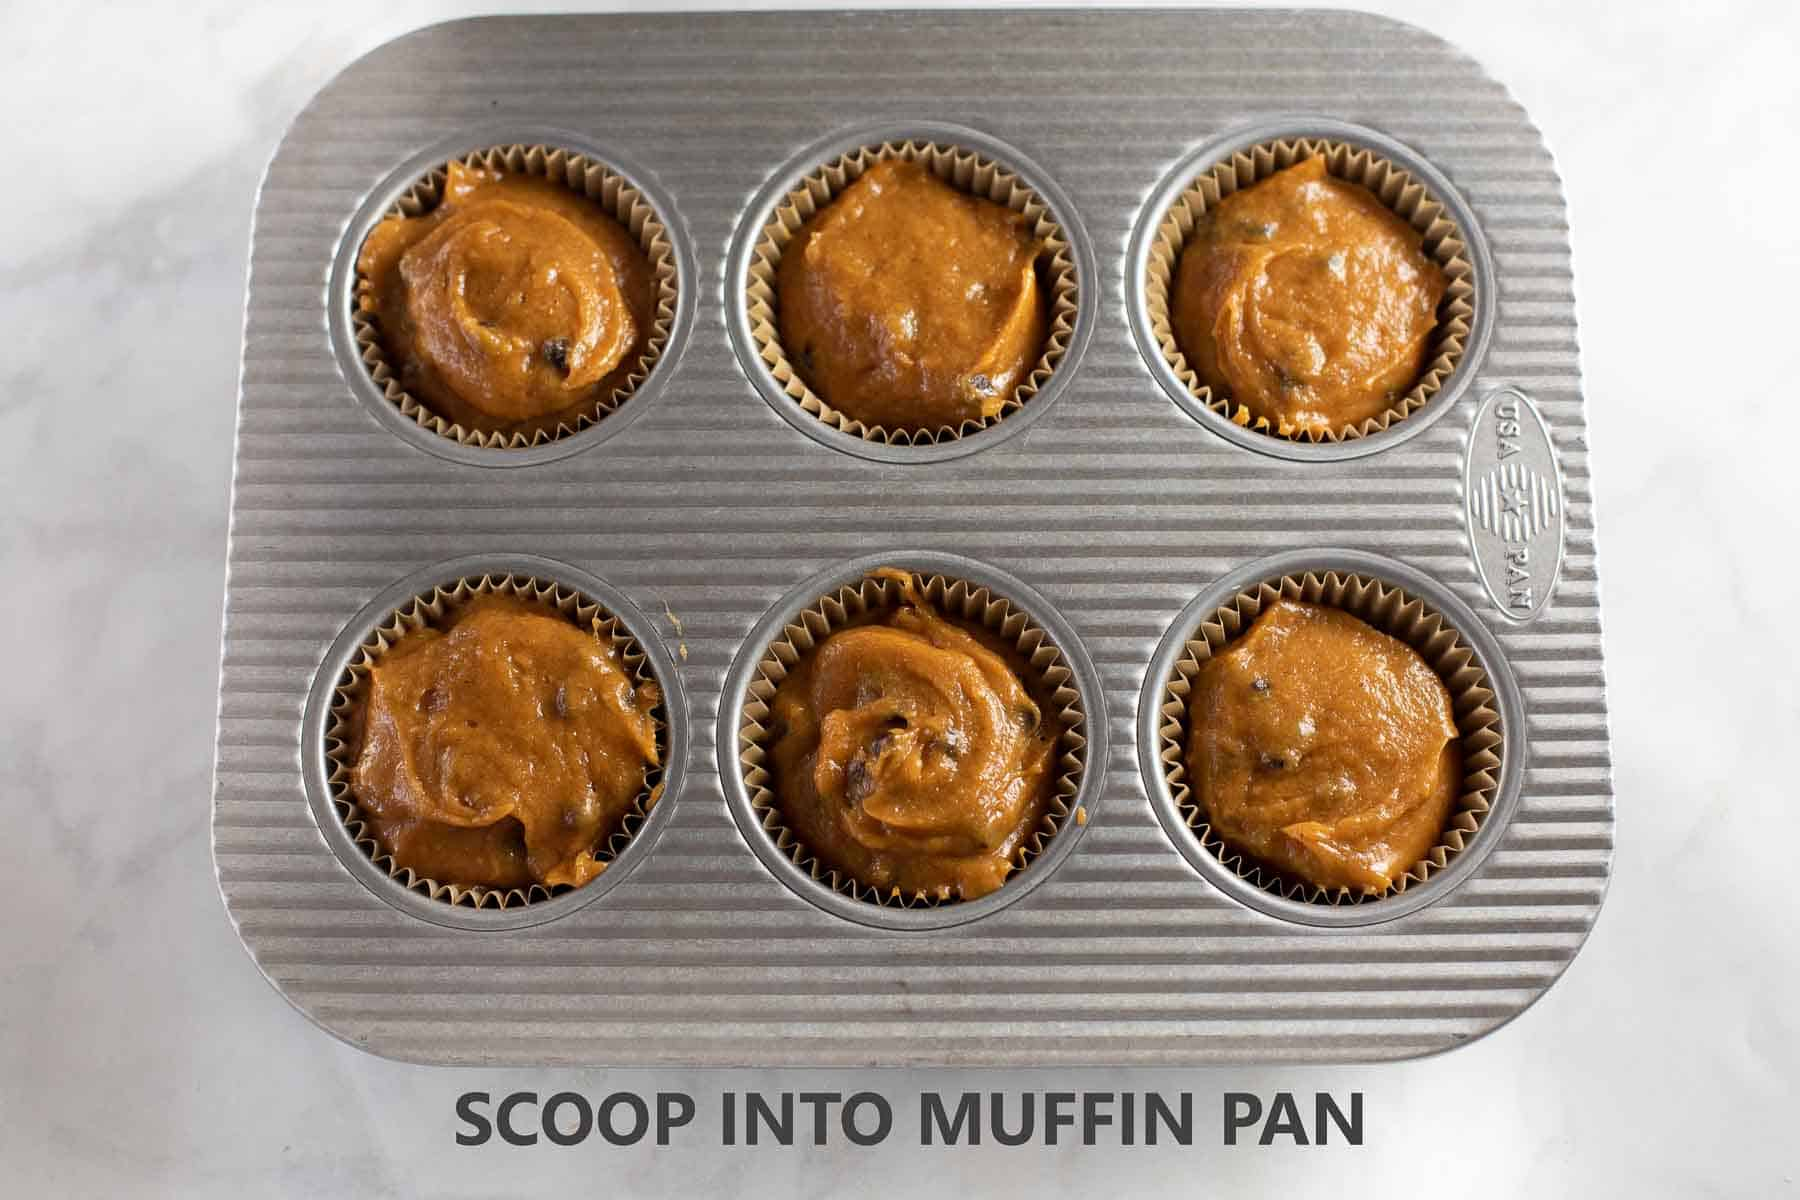 muffin batter scooped into pan before baking